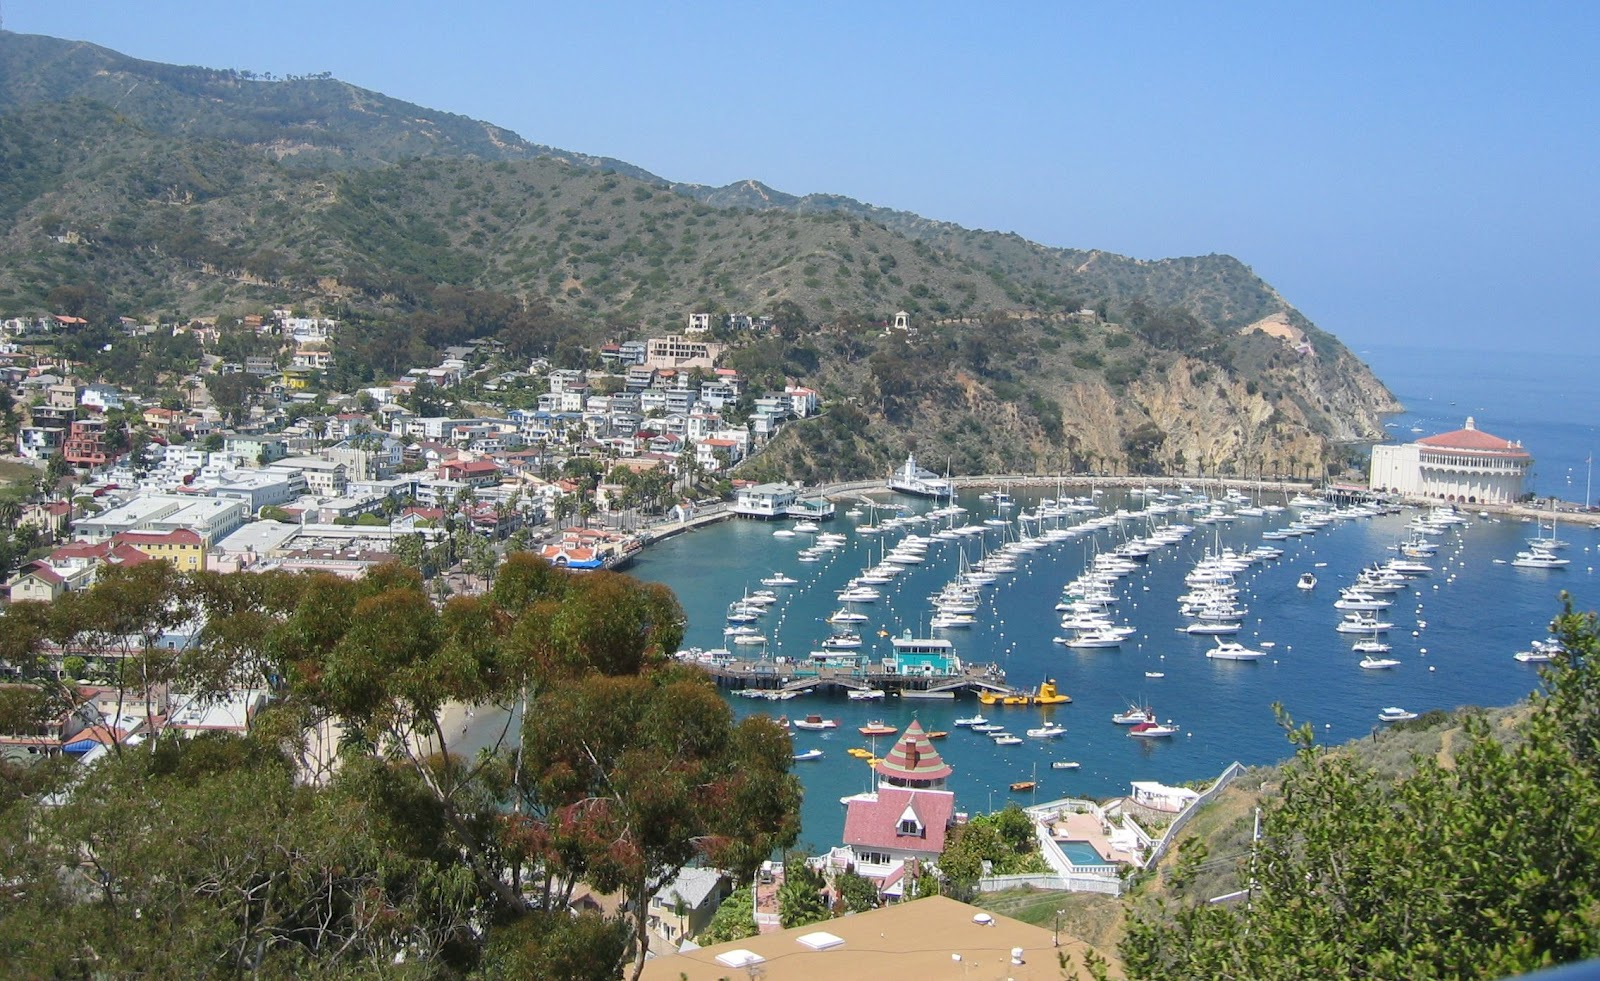 Sailing sabbatical planning our escape august 2012 for The catalina